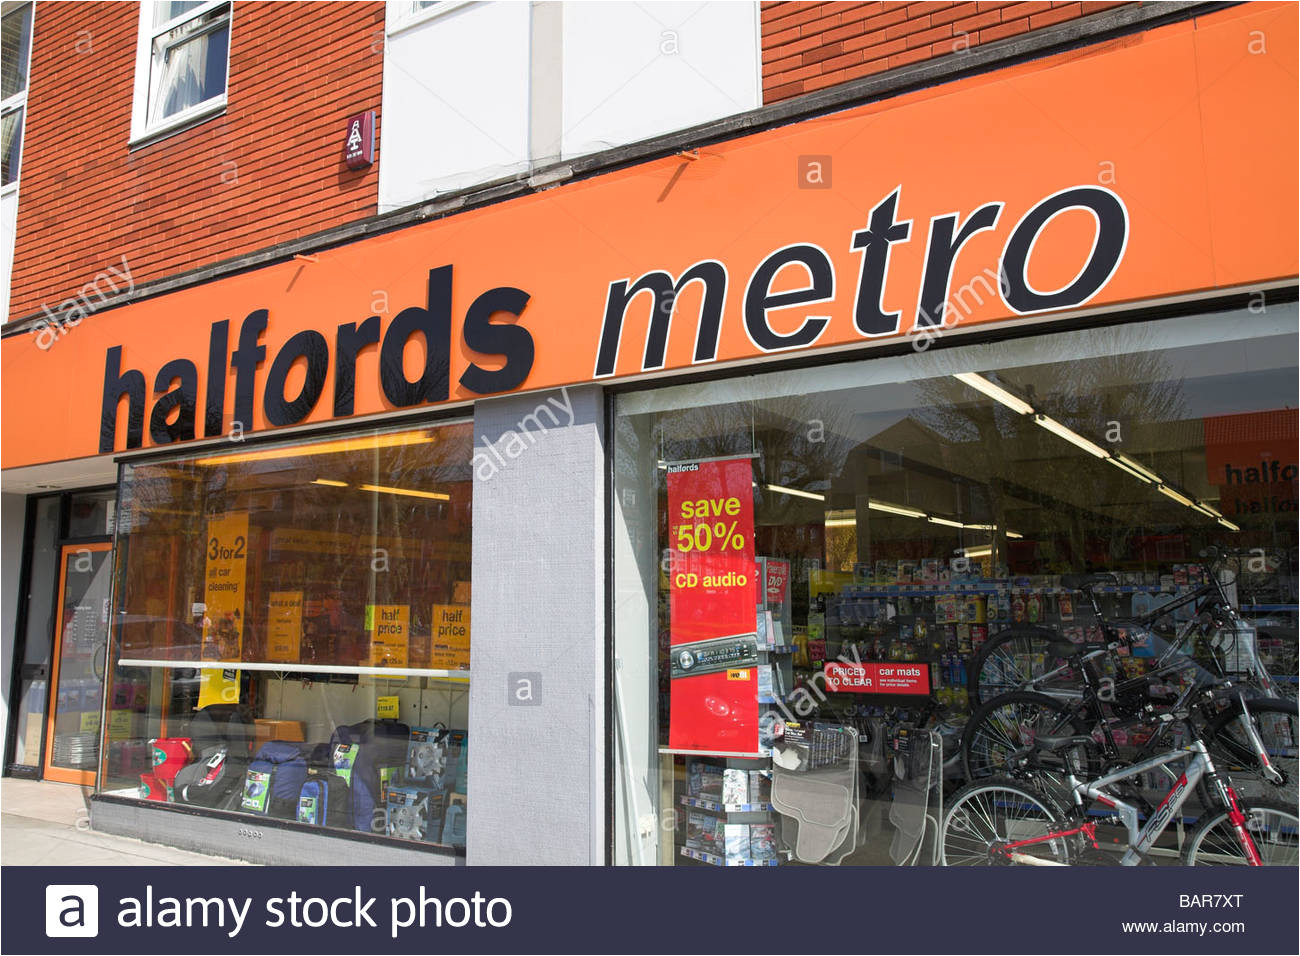 halfords metro super store stock image